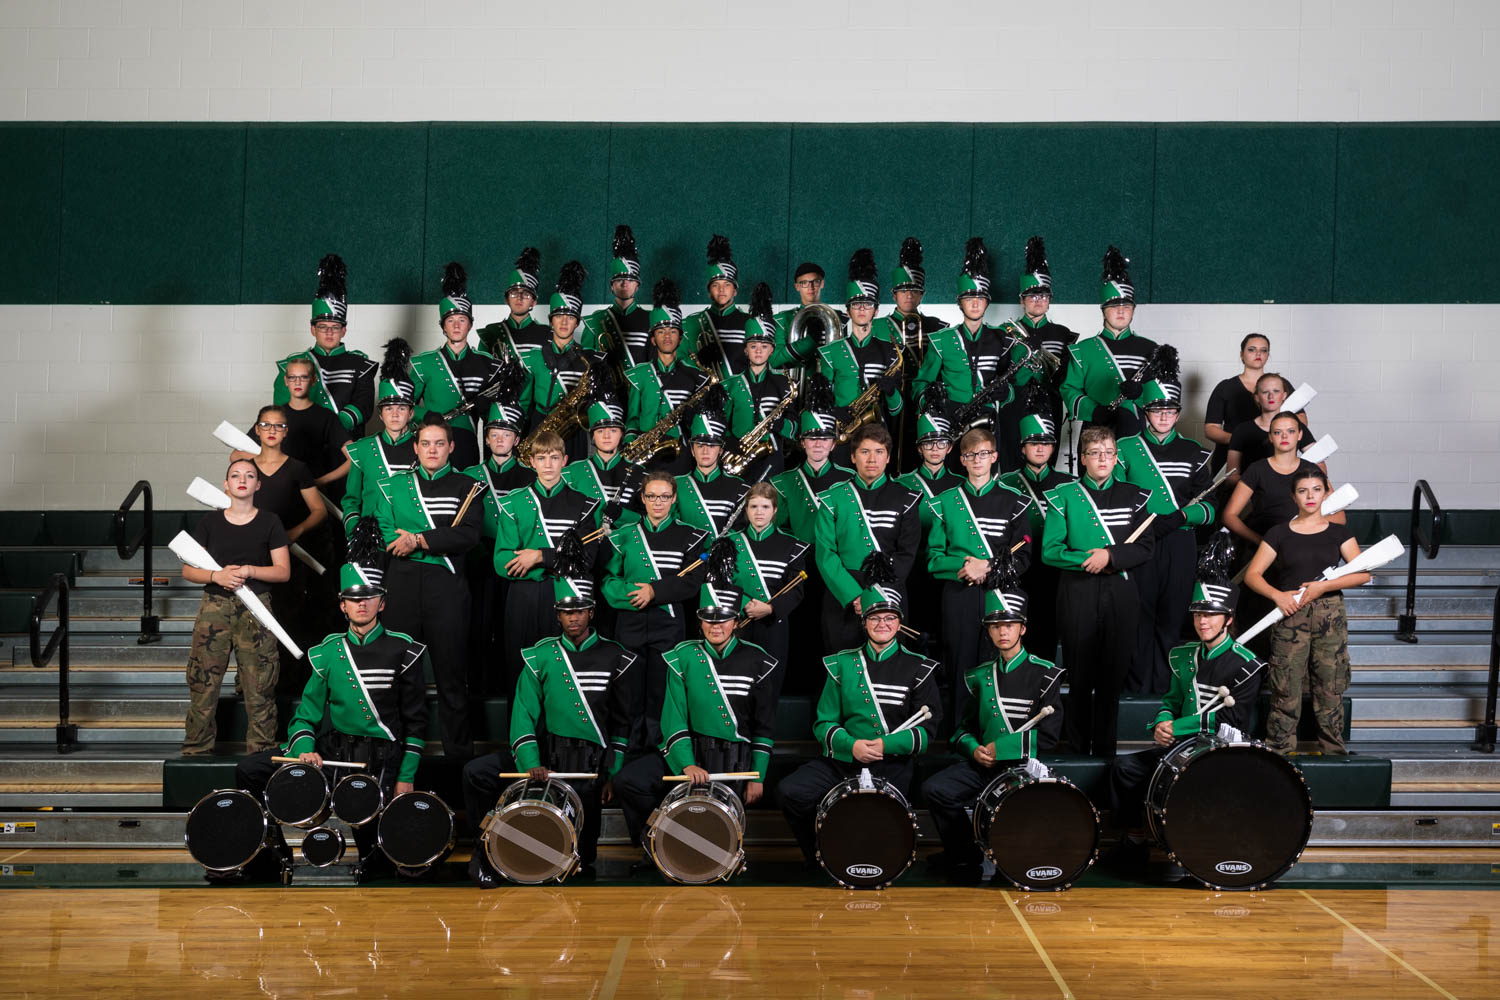 Group photo of the PHS Marching Band